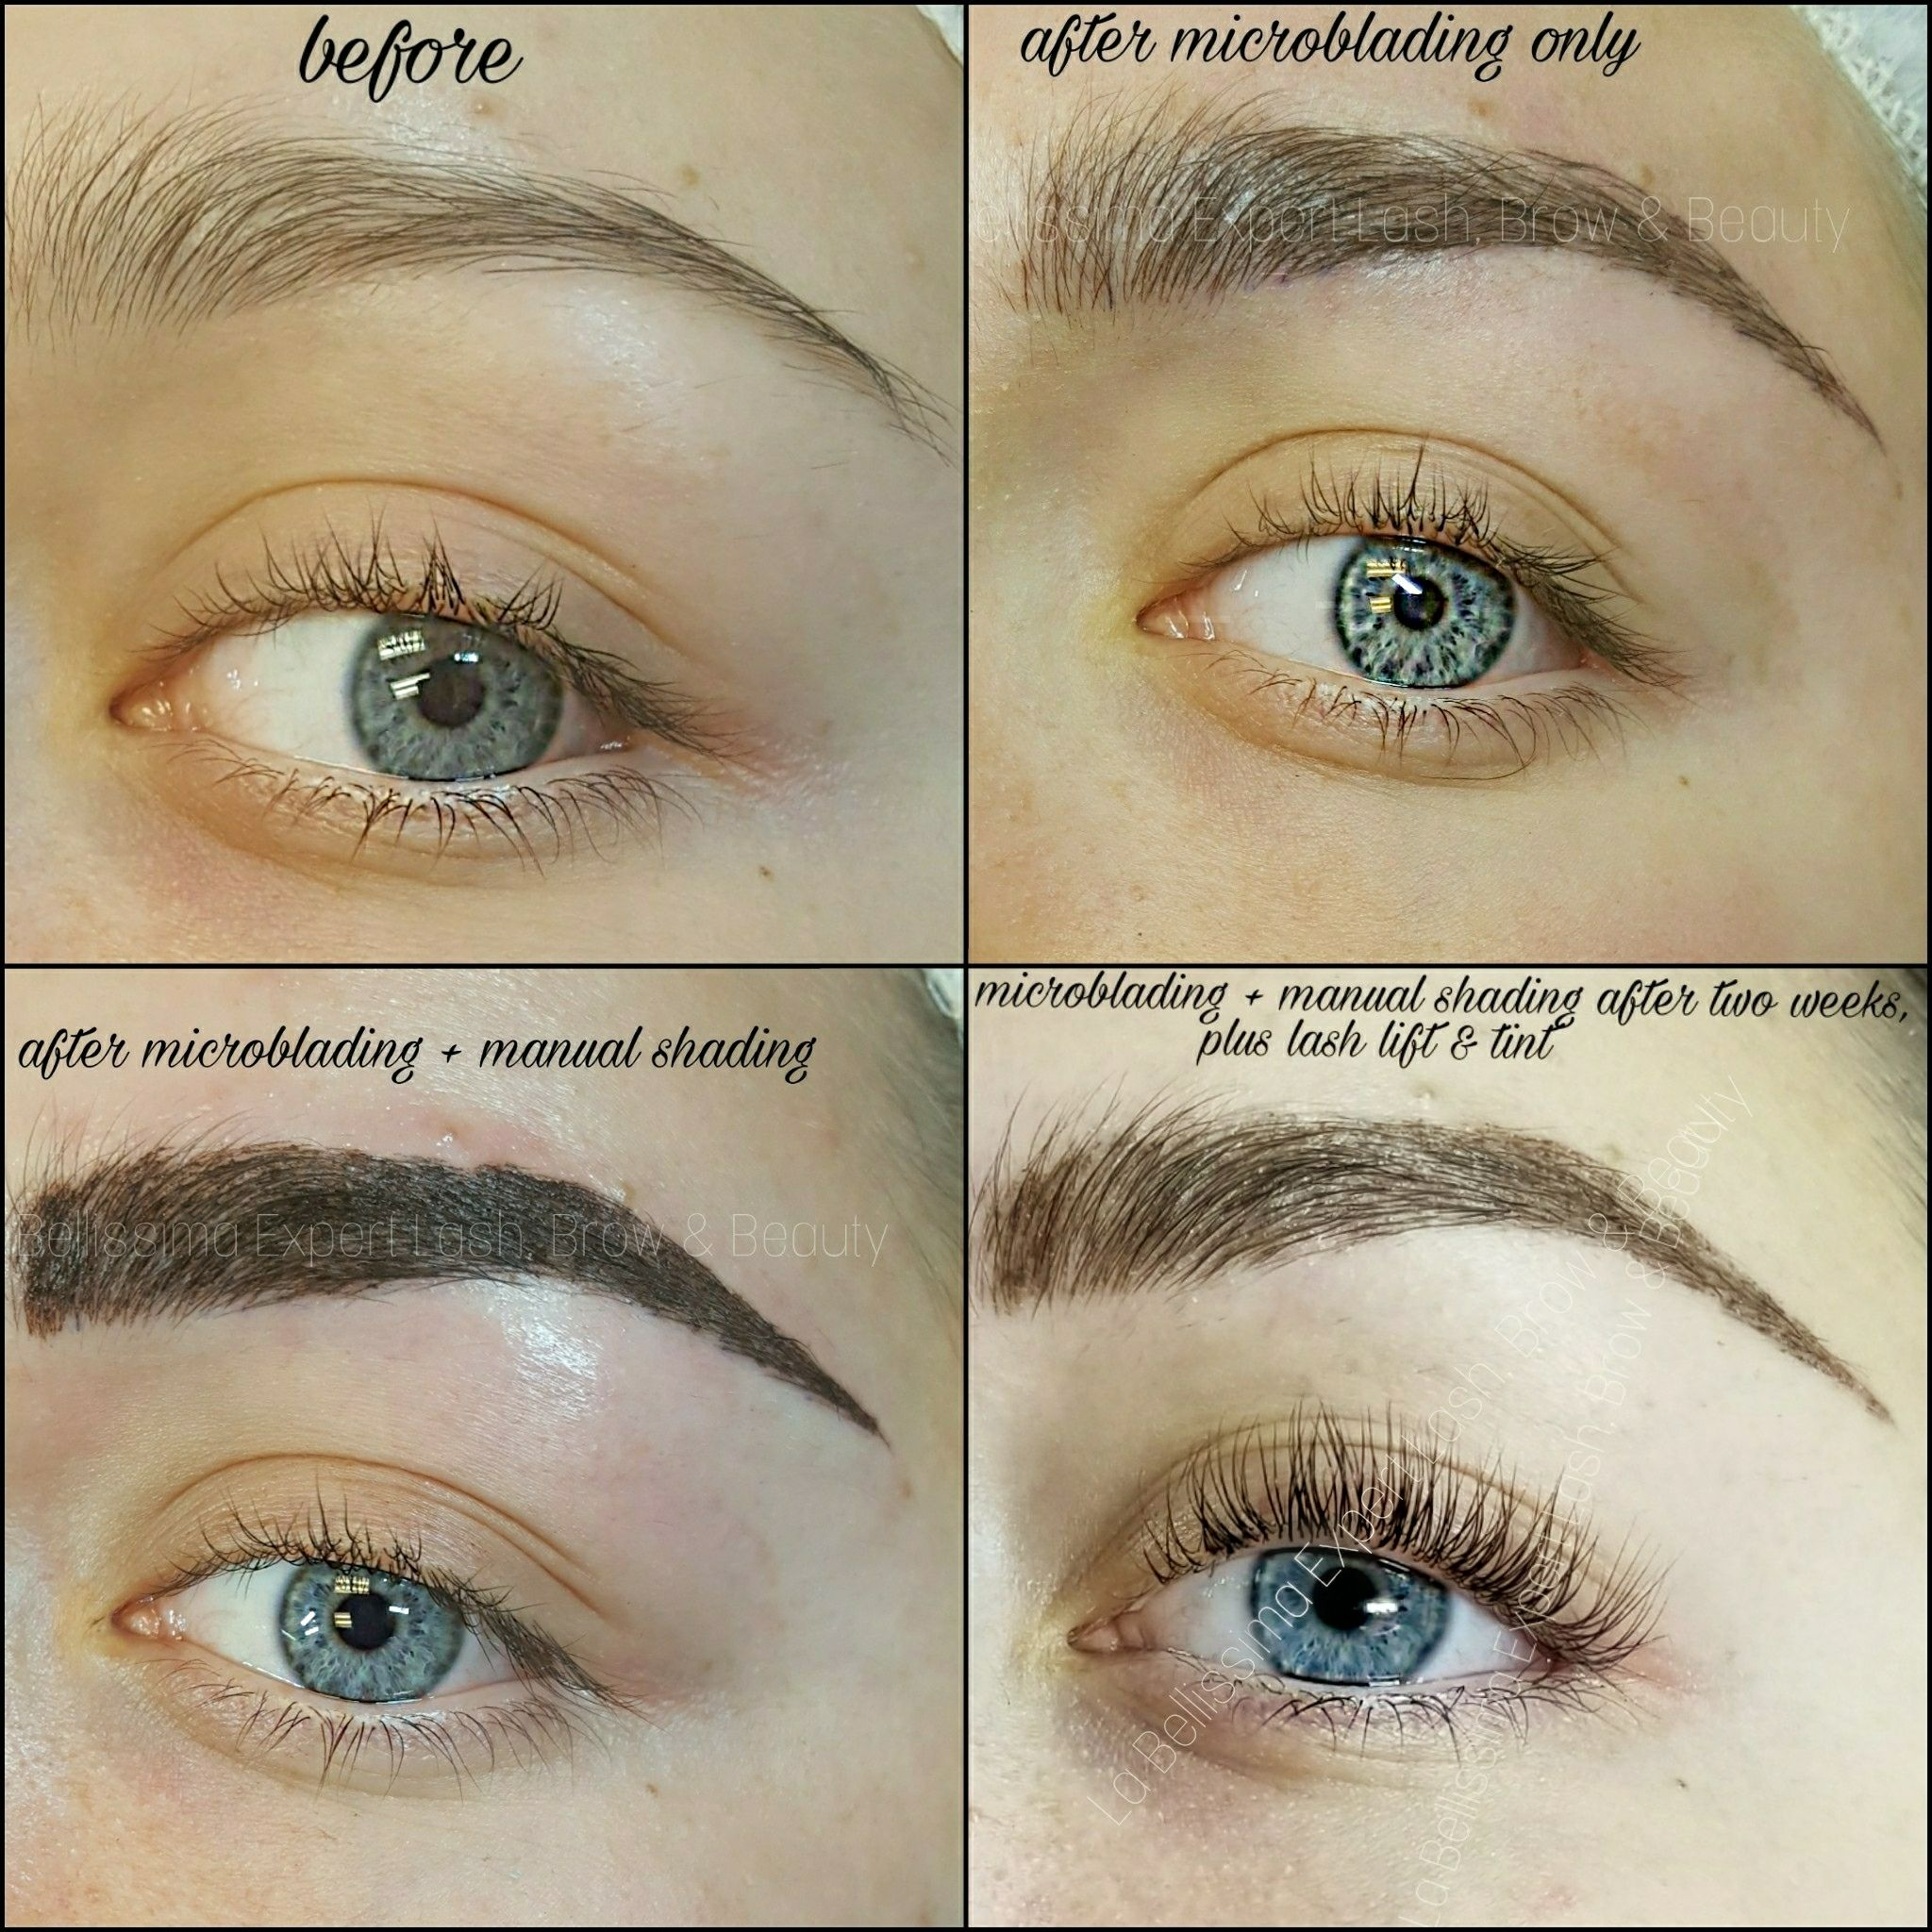 She wants very strong brows, but see how much they faded in